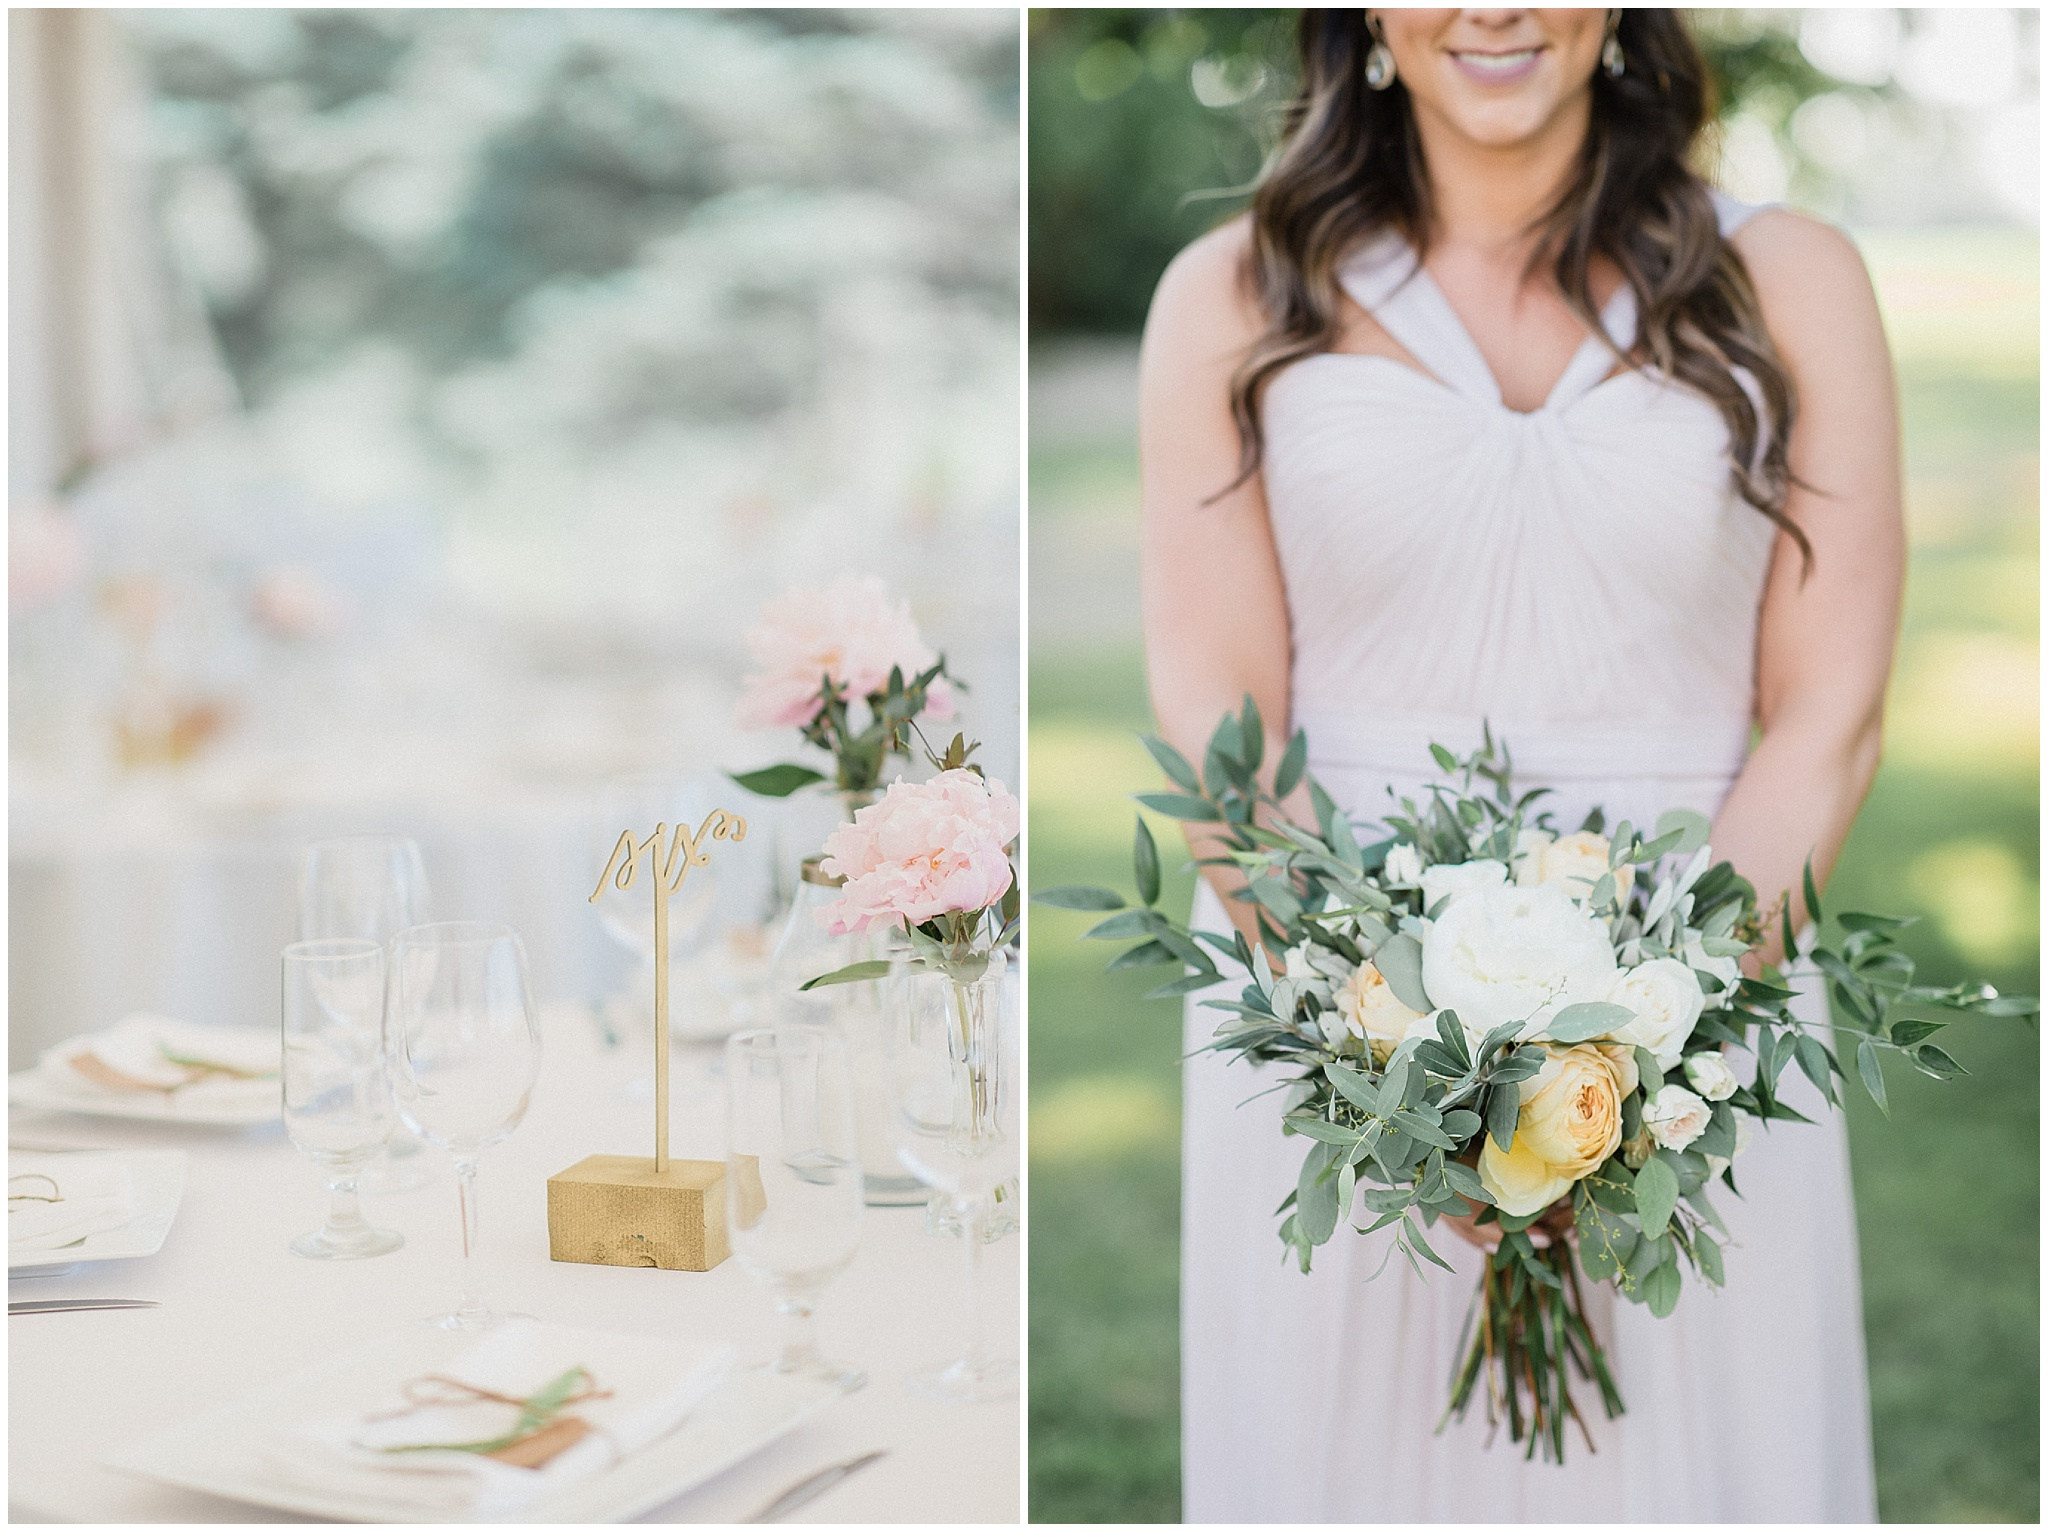 Pastel Amsale bridesmaid dress with hand tied bouquet | Tent wedding on family farm in Guelph, Ontario by Jenn Kavanagh Photography